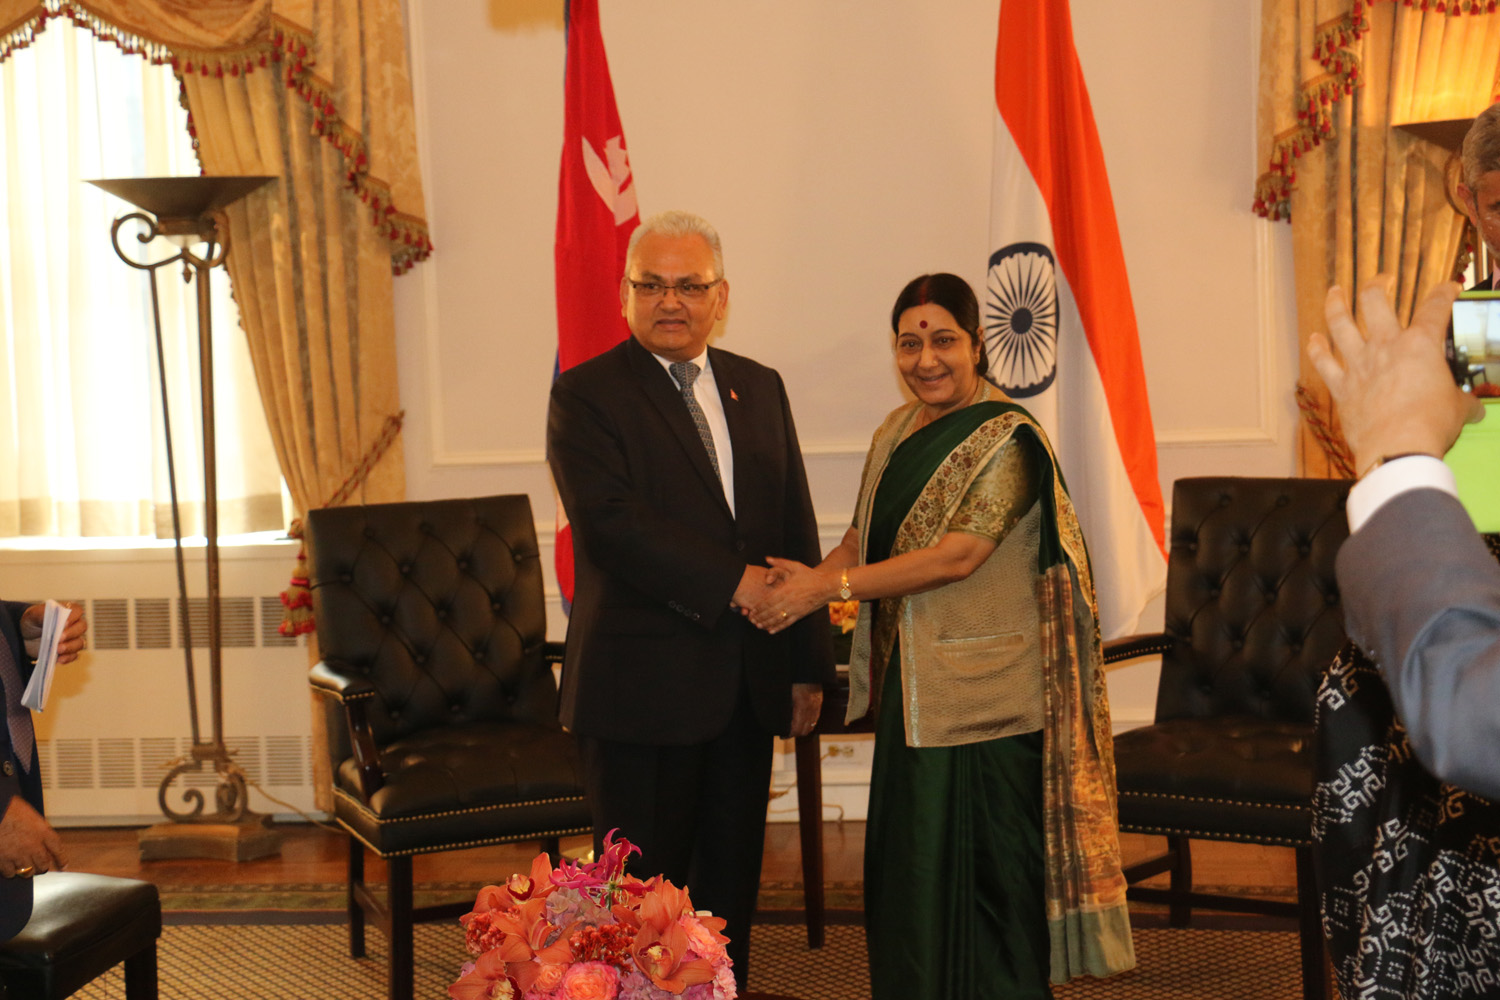 Minster for Foreign Affairs Mahendra Bahadur Pandey shaking hands with Indian Minister for External Affairs Sushma Swaraj in New York on Wednesday, September 30, 2015. Photo: RSS